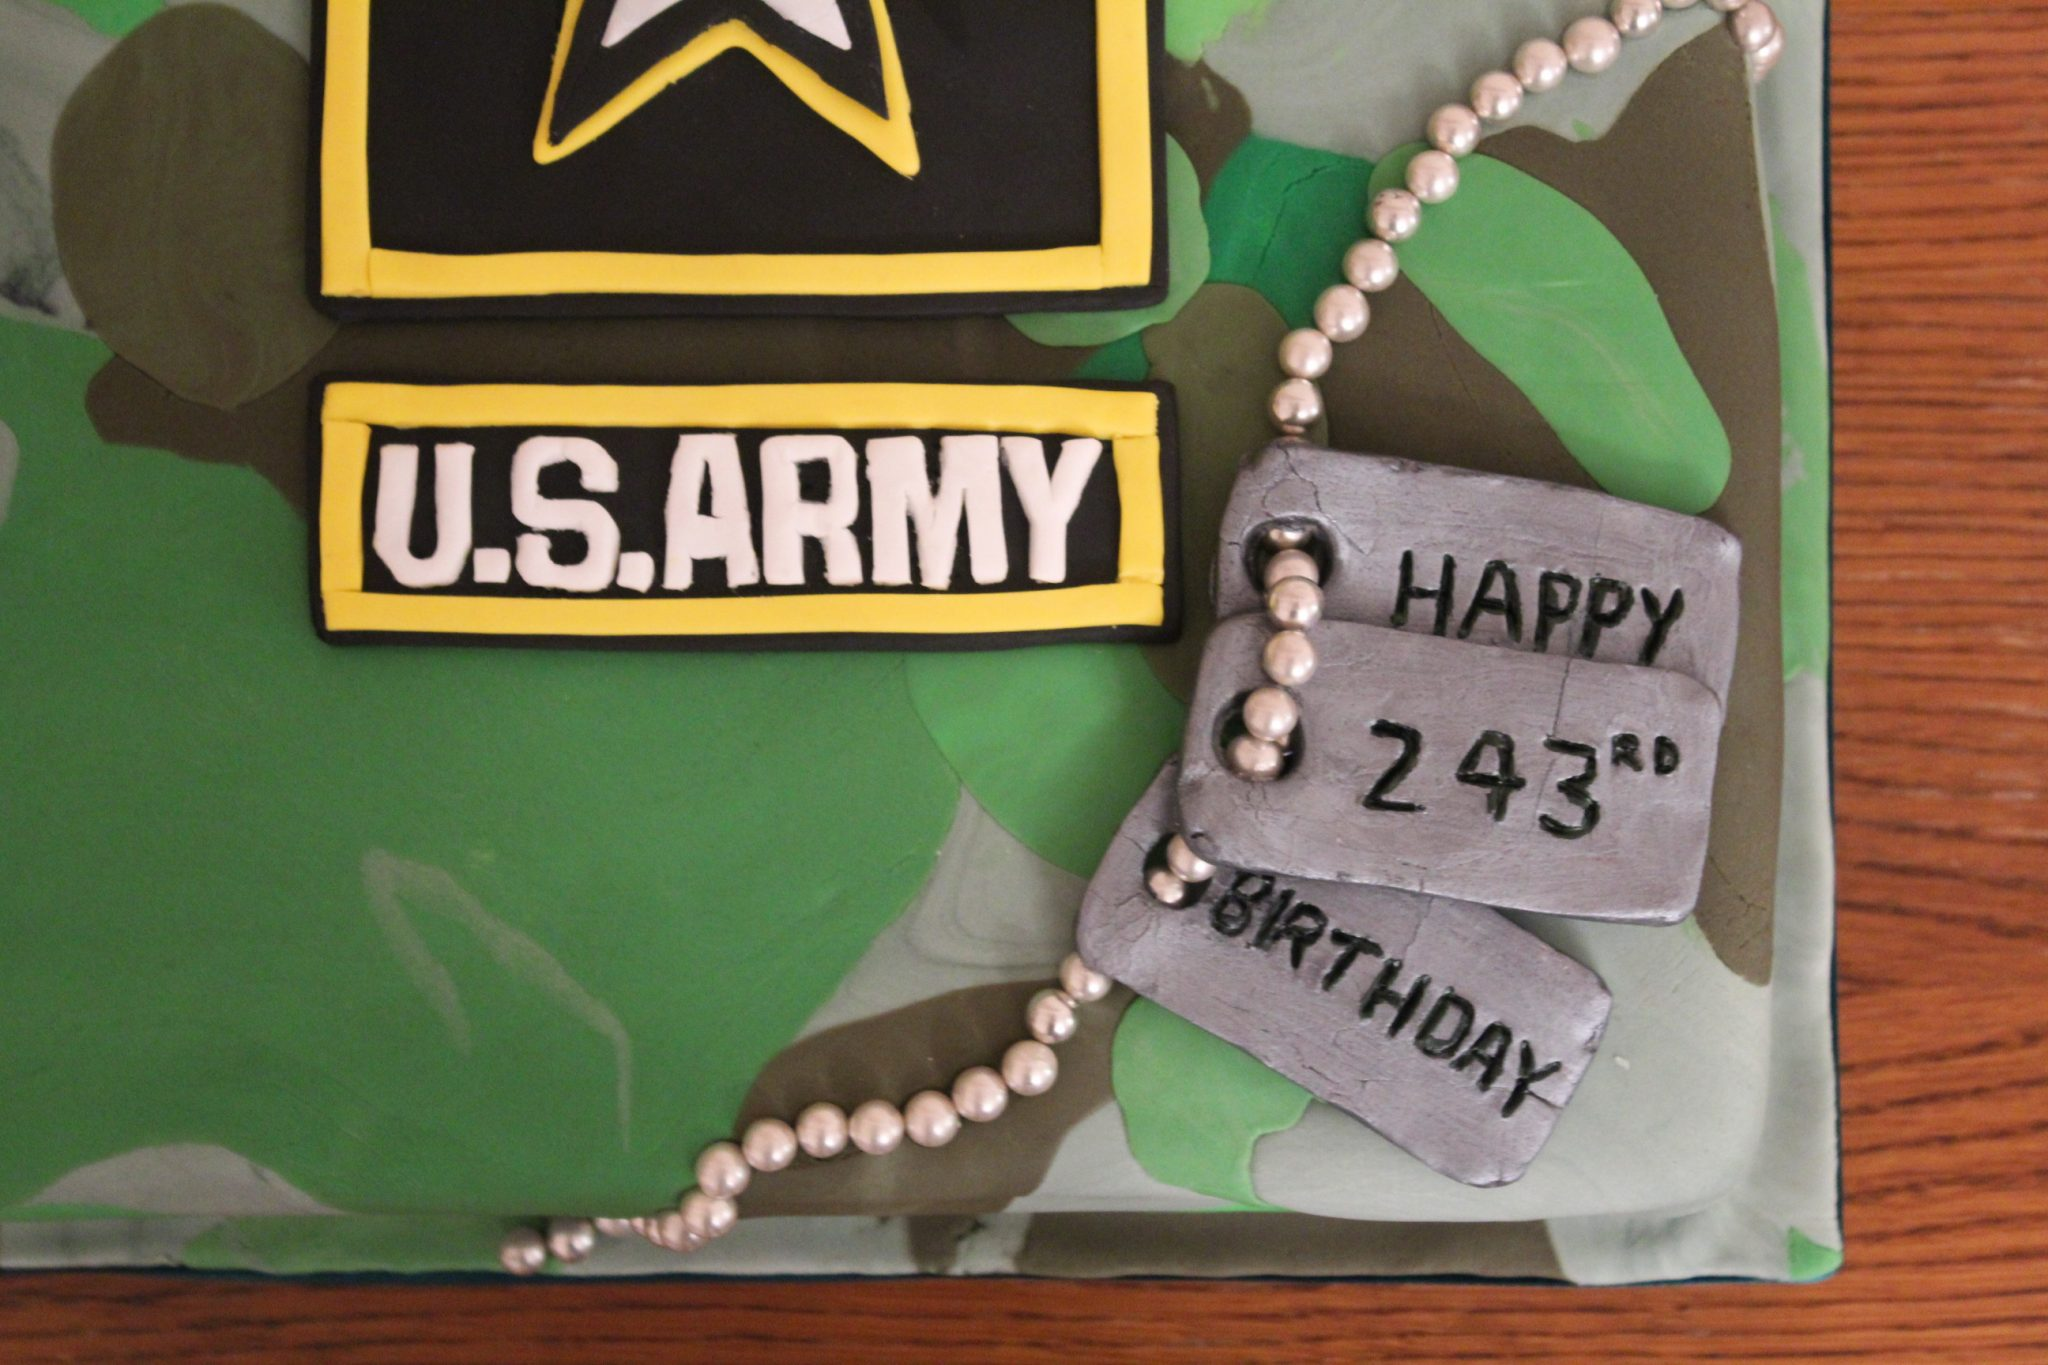 US Army Camouflage Birthday Cake